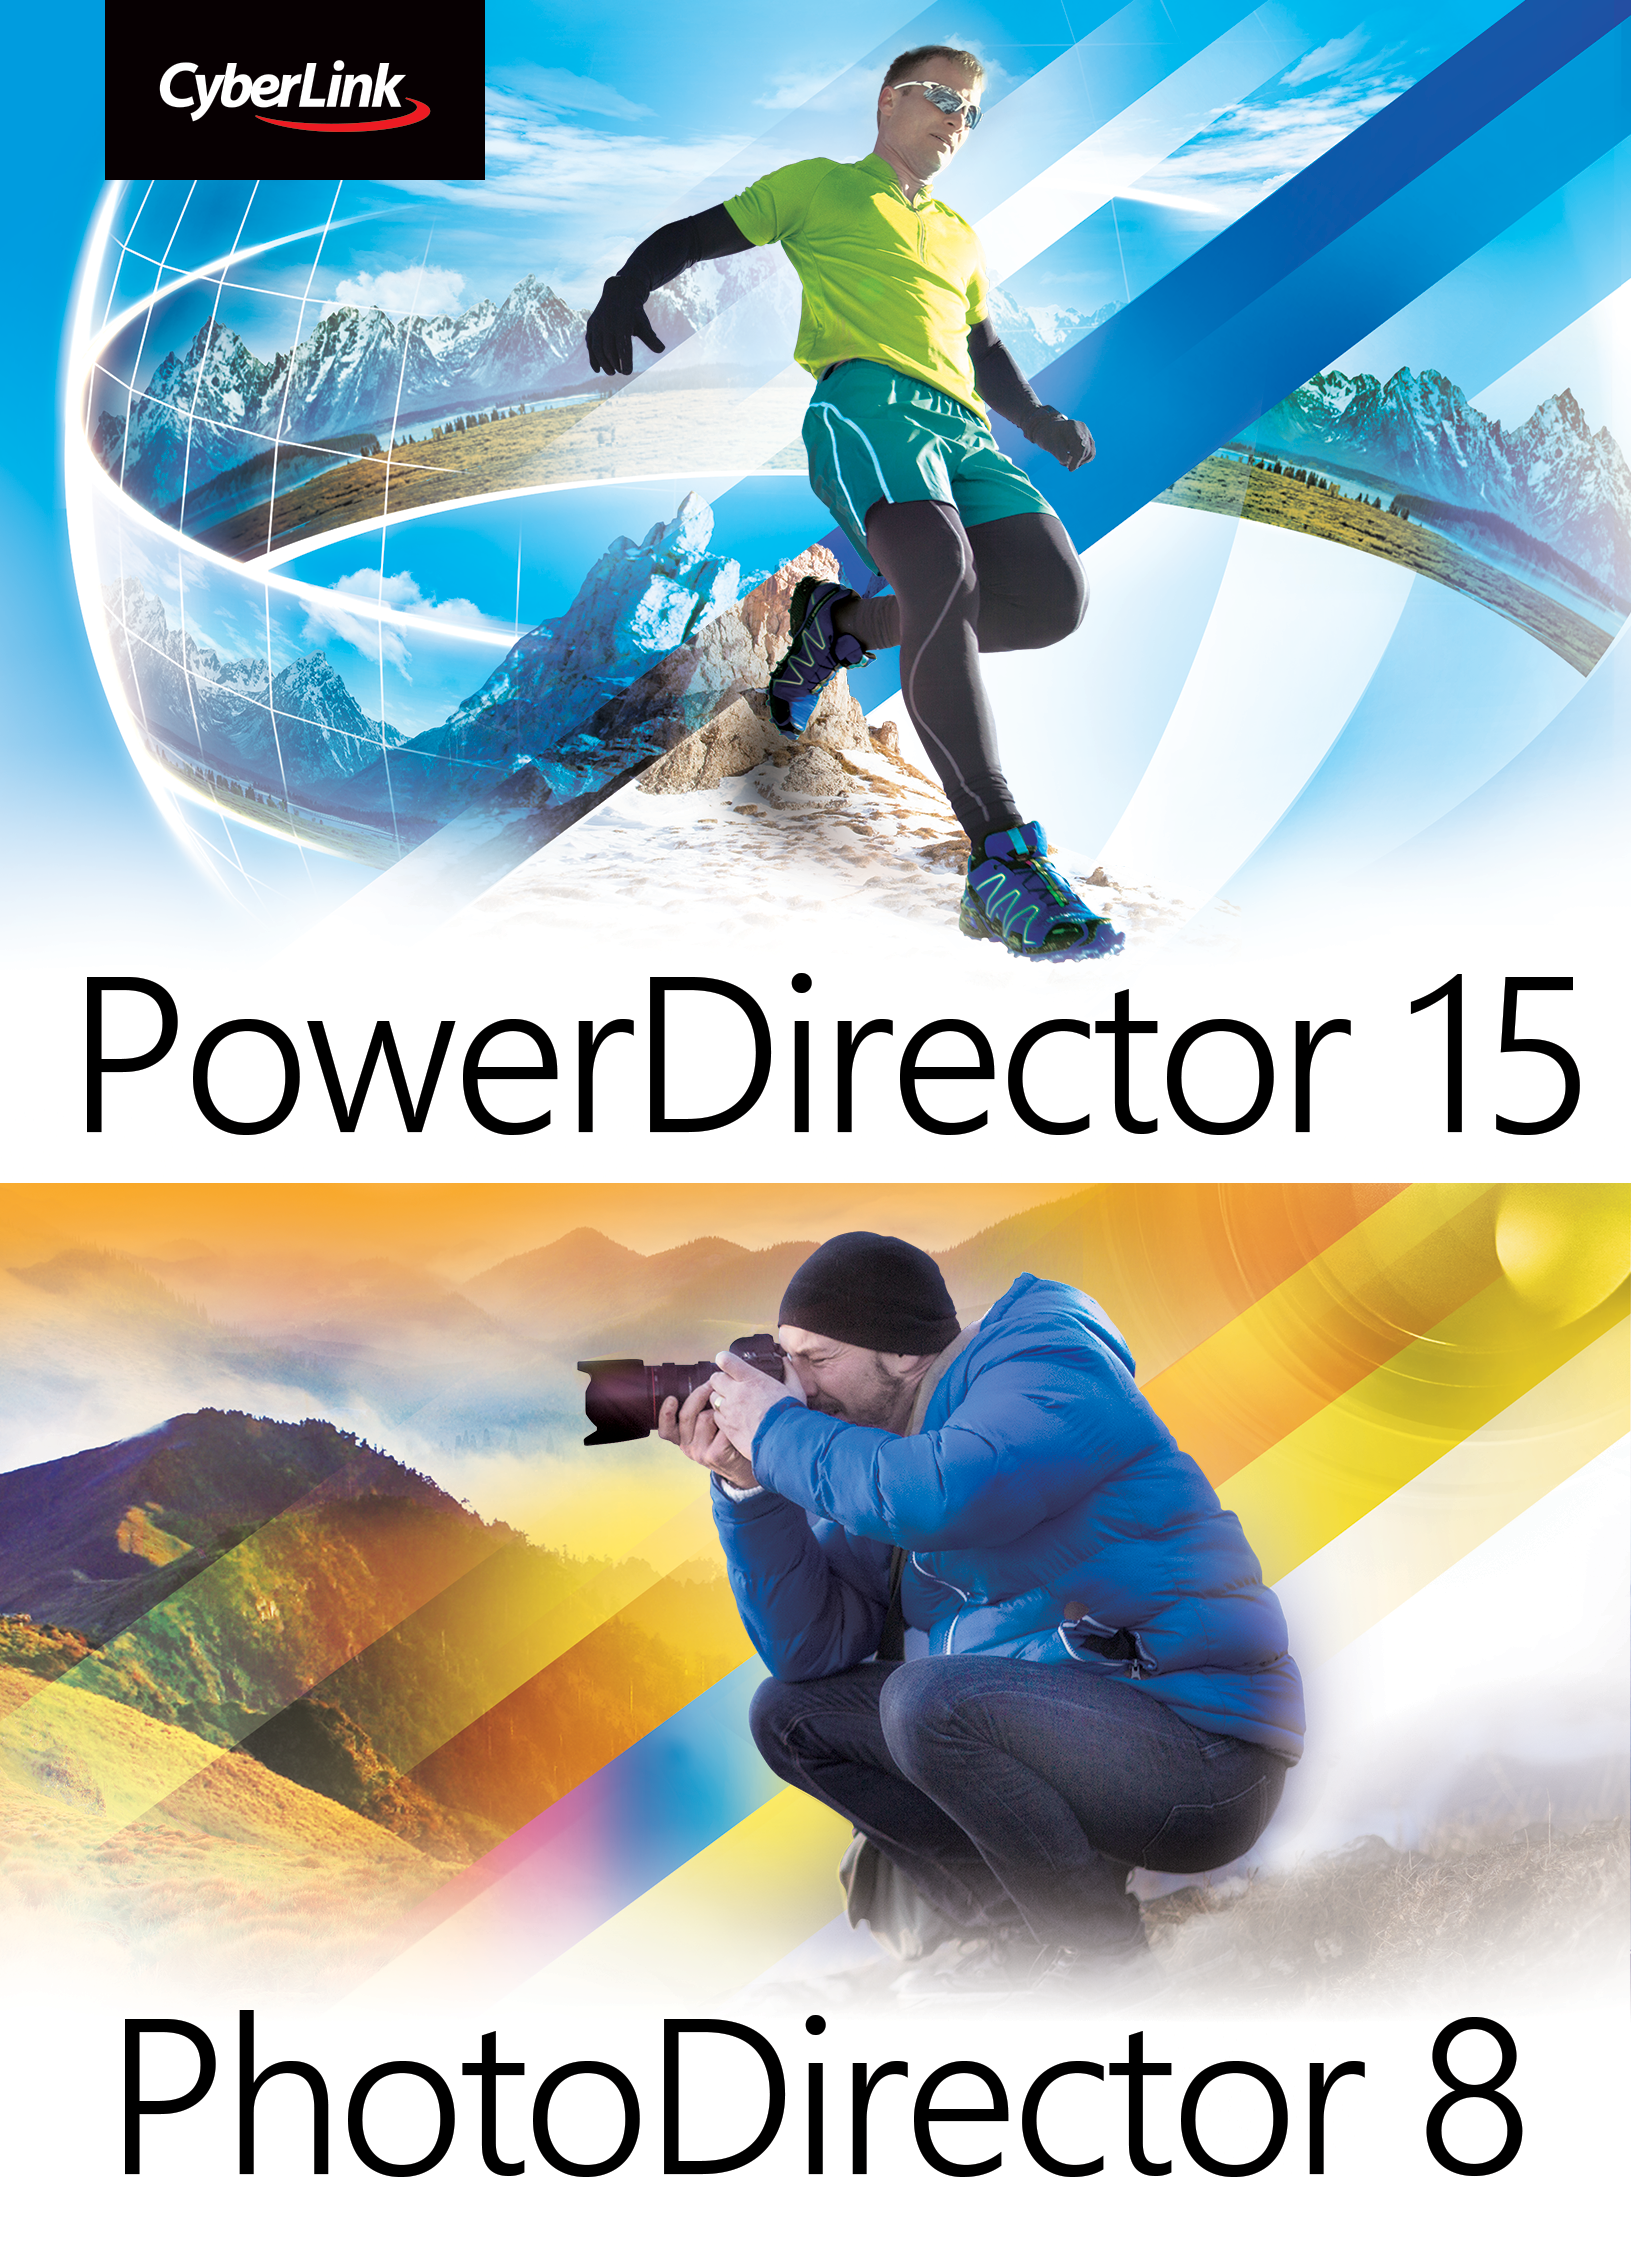 CyberLink PowerDirector 15 Ultra and PhotoDirector 8 Ultra bundle [Download]